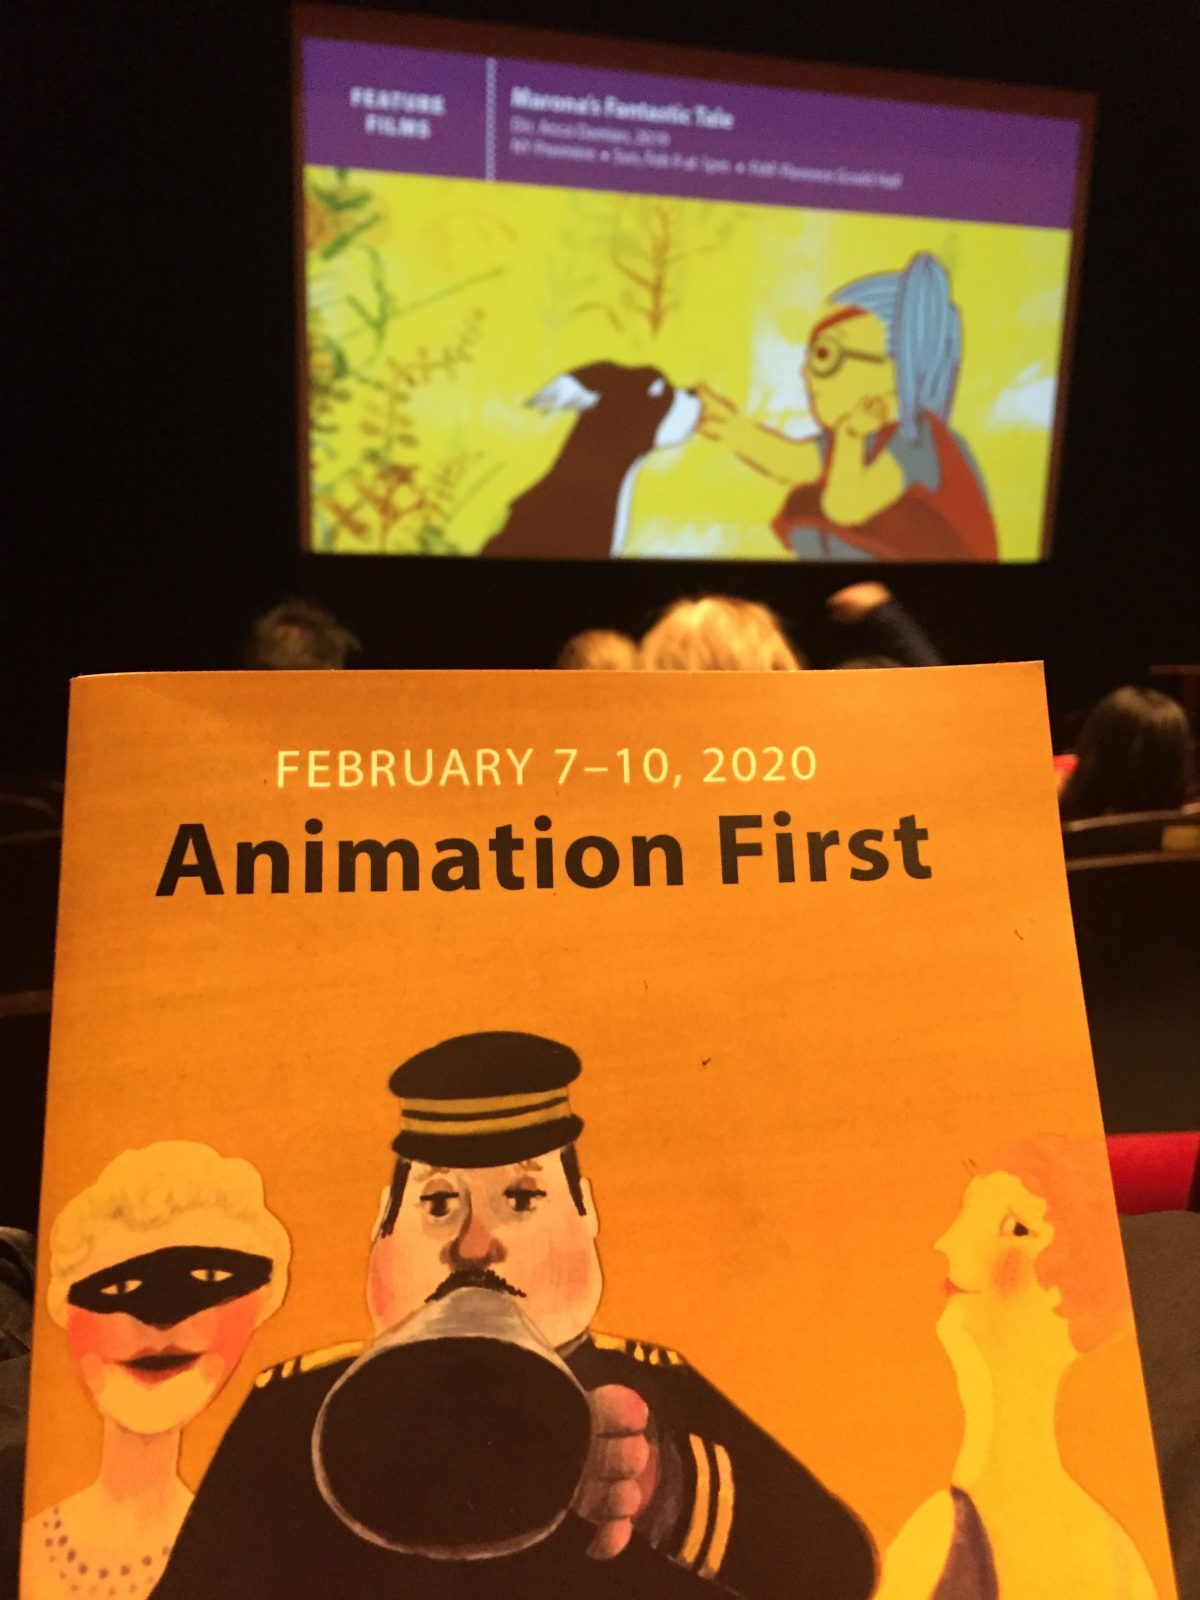 FIAF Animation First, Feb 7-10, 2020